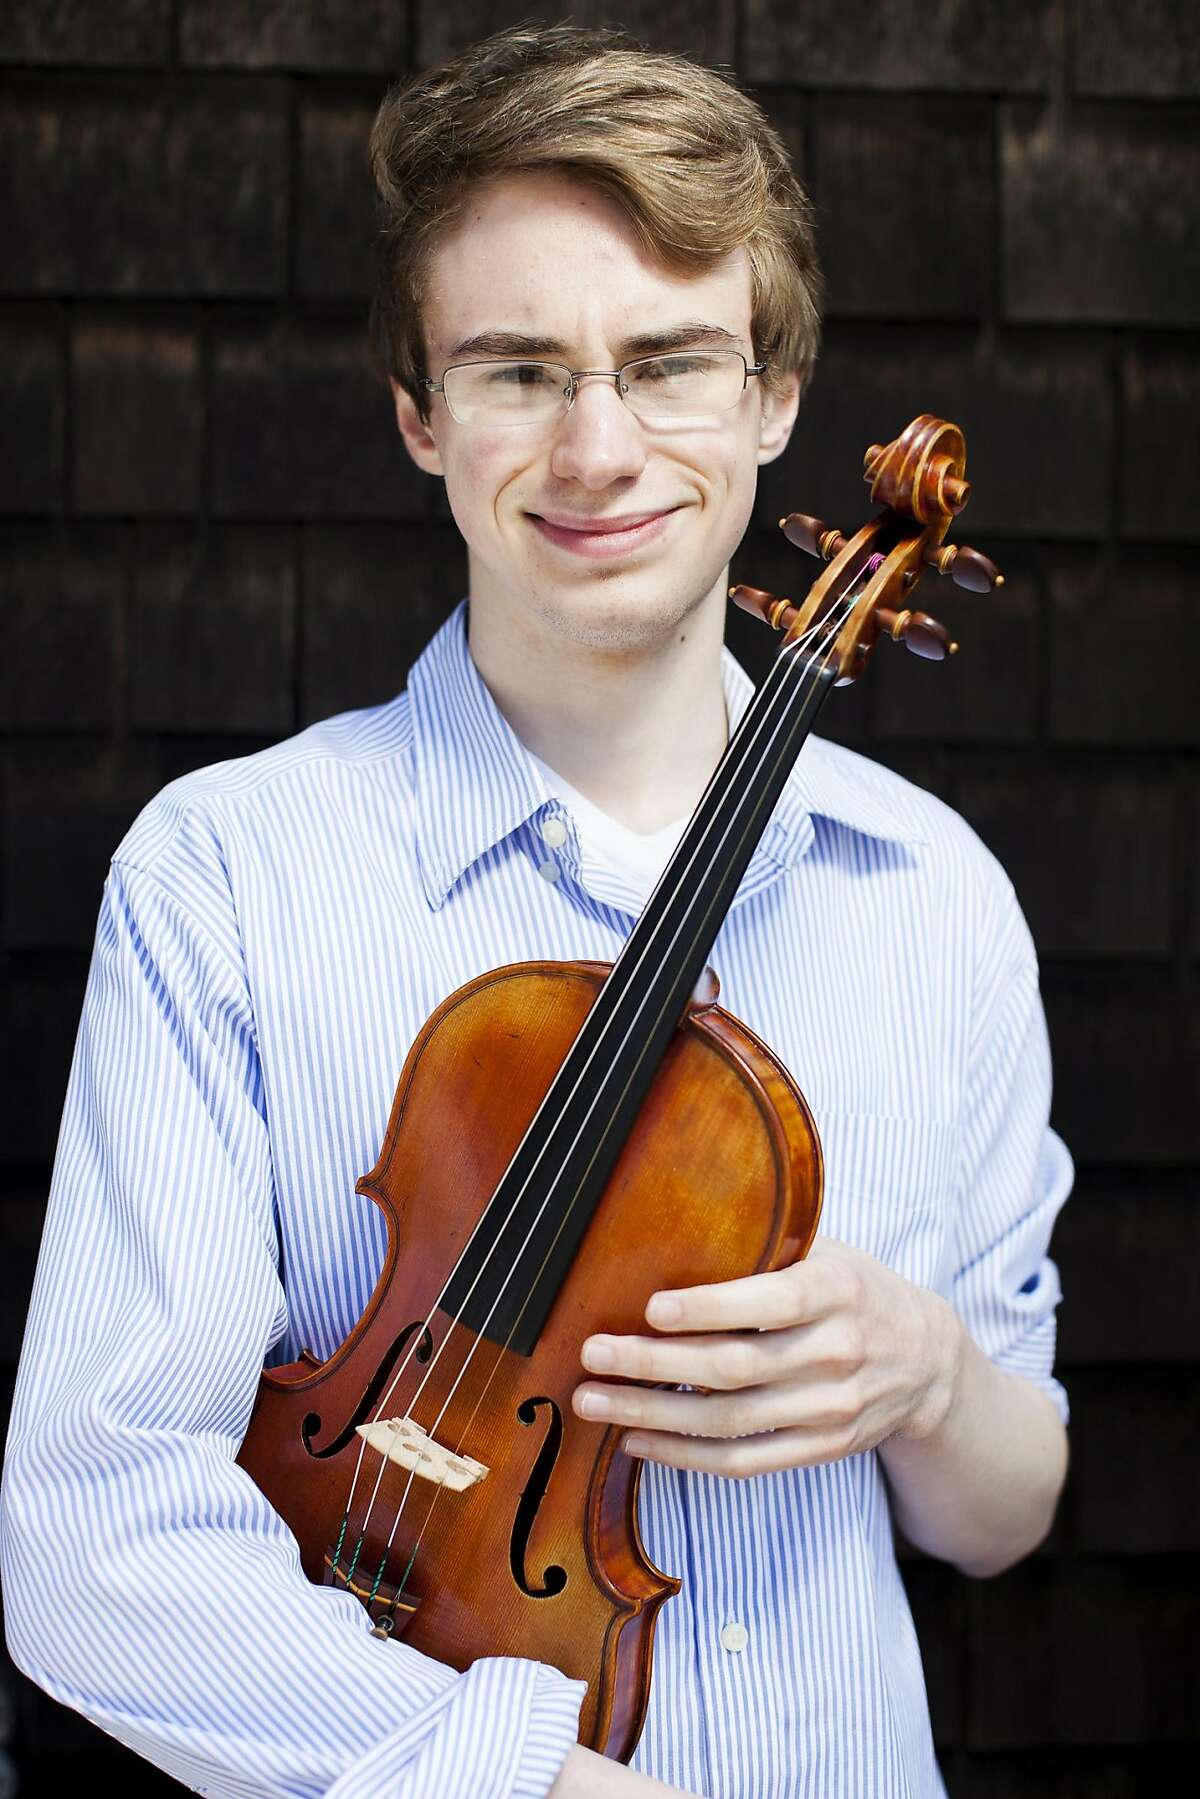 18 year-old violinist Kenneth Renshaw sits for a portrait at home in San Francisco, Calif. on Thursday, May 24, 2012. Renshaw, who has been playing violin since the age of 4, has won first prize in the senior division of the prestigious Menuhin Competition in Beijing this April. The former concertmaster of the San Francisco Symphony Youth Orchestra has also recently graduated from The Ruth Asawa San Francisco School of the Arts and is planning to attend the New England Conservatory of Music in Boston this fall.